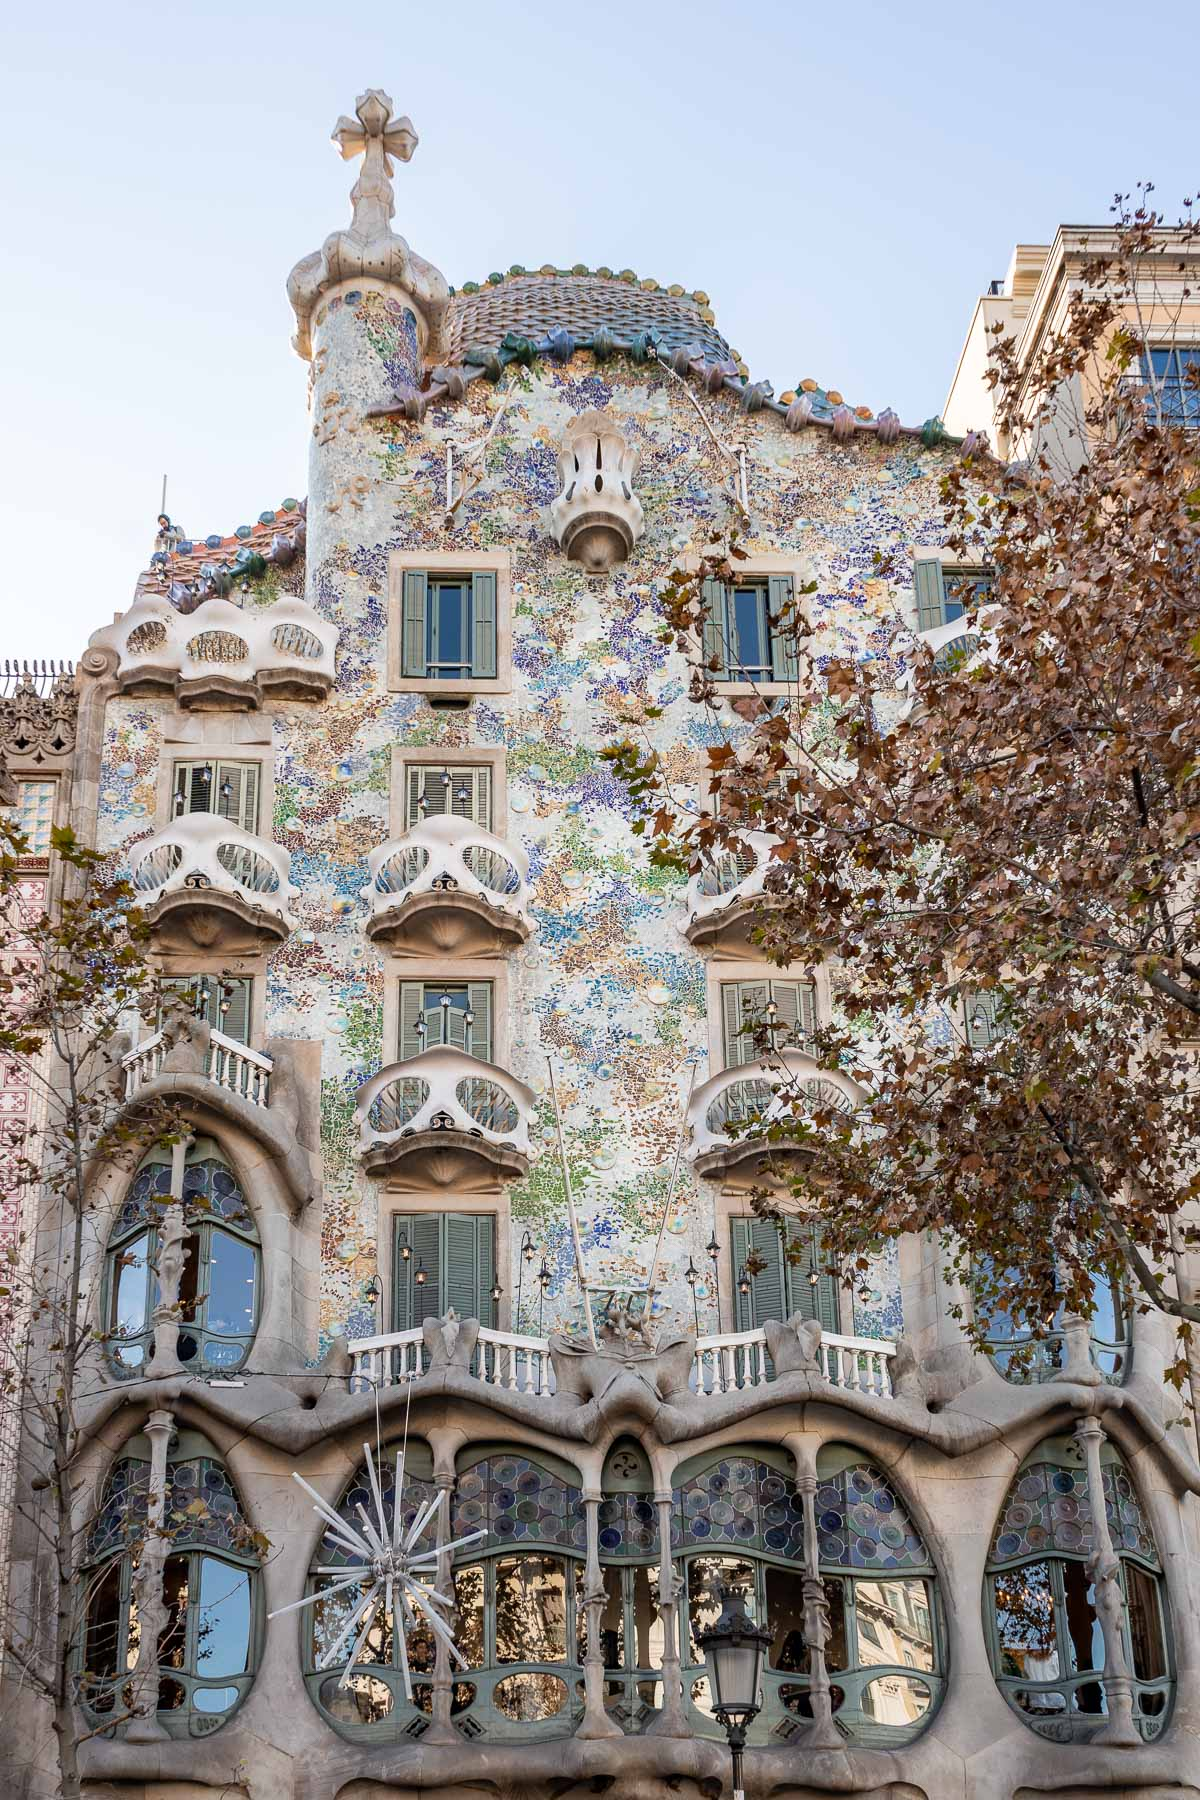 The beautiful facade of Casa Batllo in Barcelona